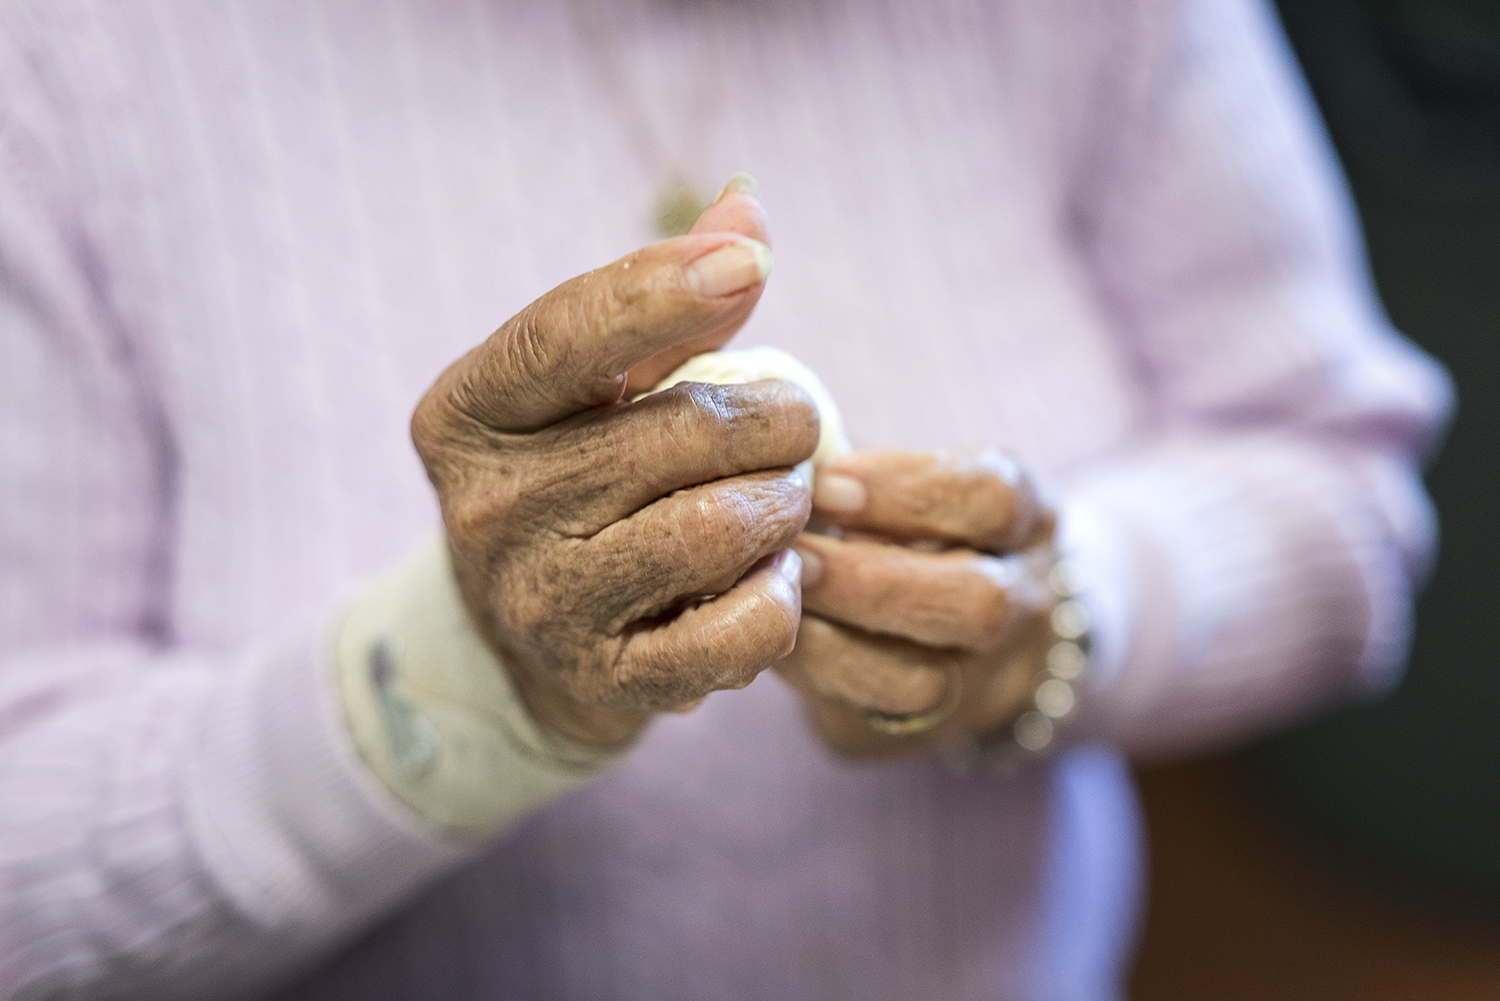 Flint, MI - Tuesday, October 17, 2017: Linda Quintanilla, 90, from Flushing, forms small balls of masa in the kitchen at the San Juan Diego Activity Center at Our Lady of Guadalupe. After the masa is tediously made into uniform balls, it is flattened into discs by hand to be cooked and packaged as tortillas. 